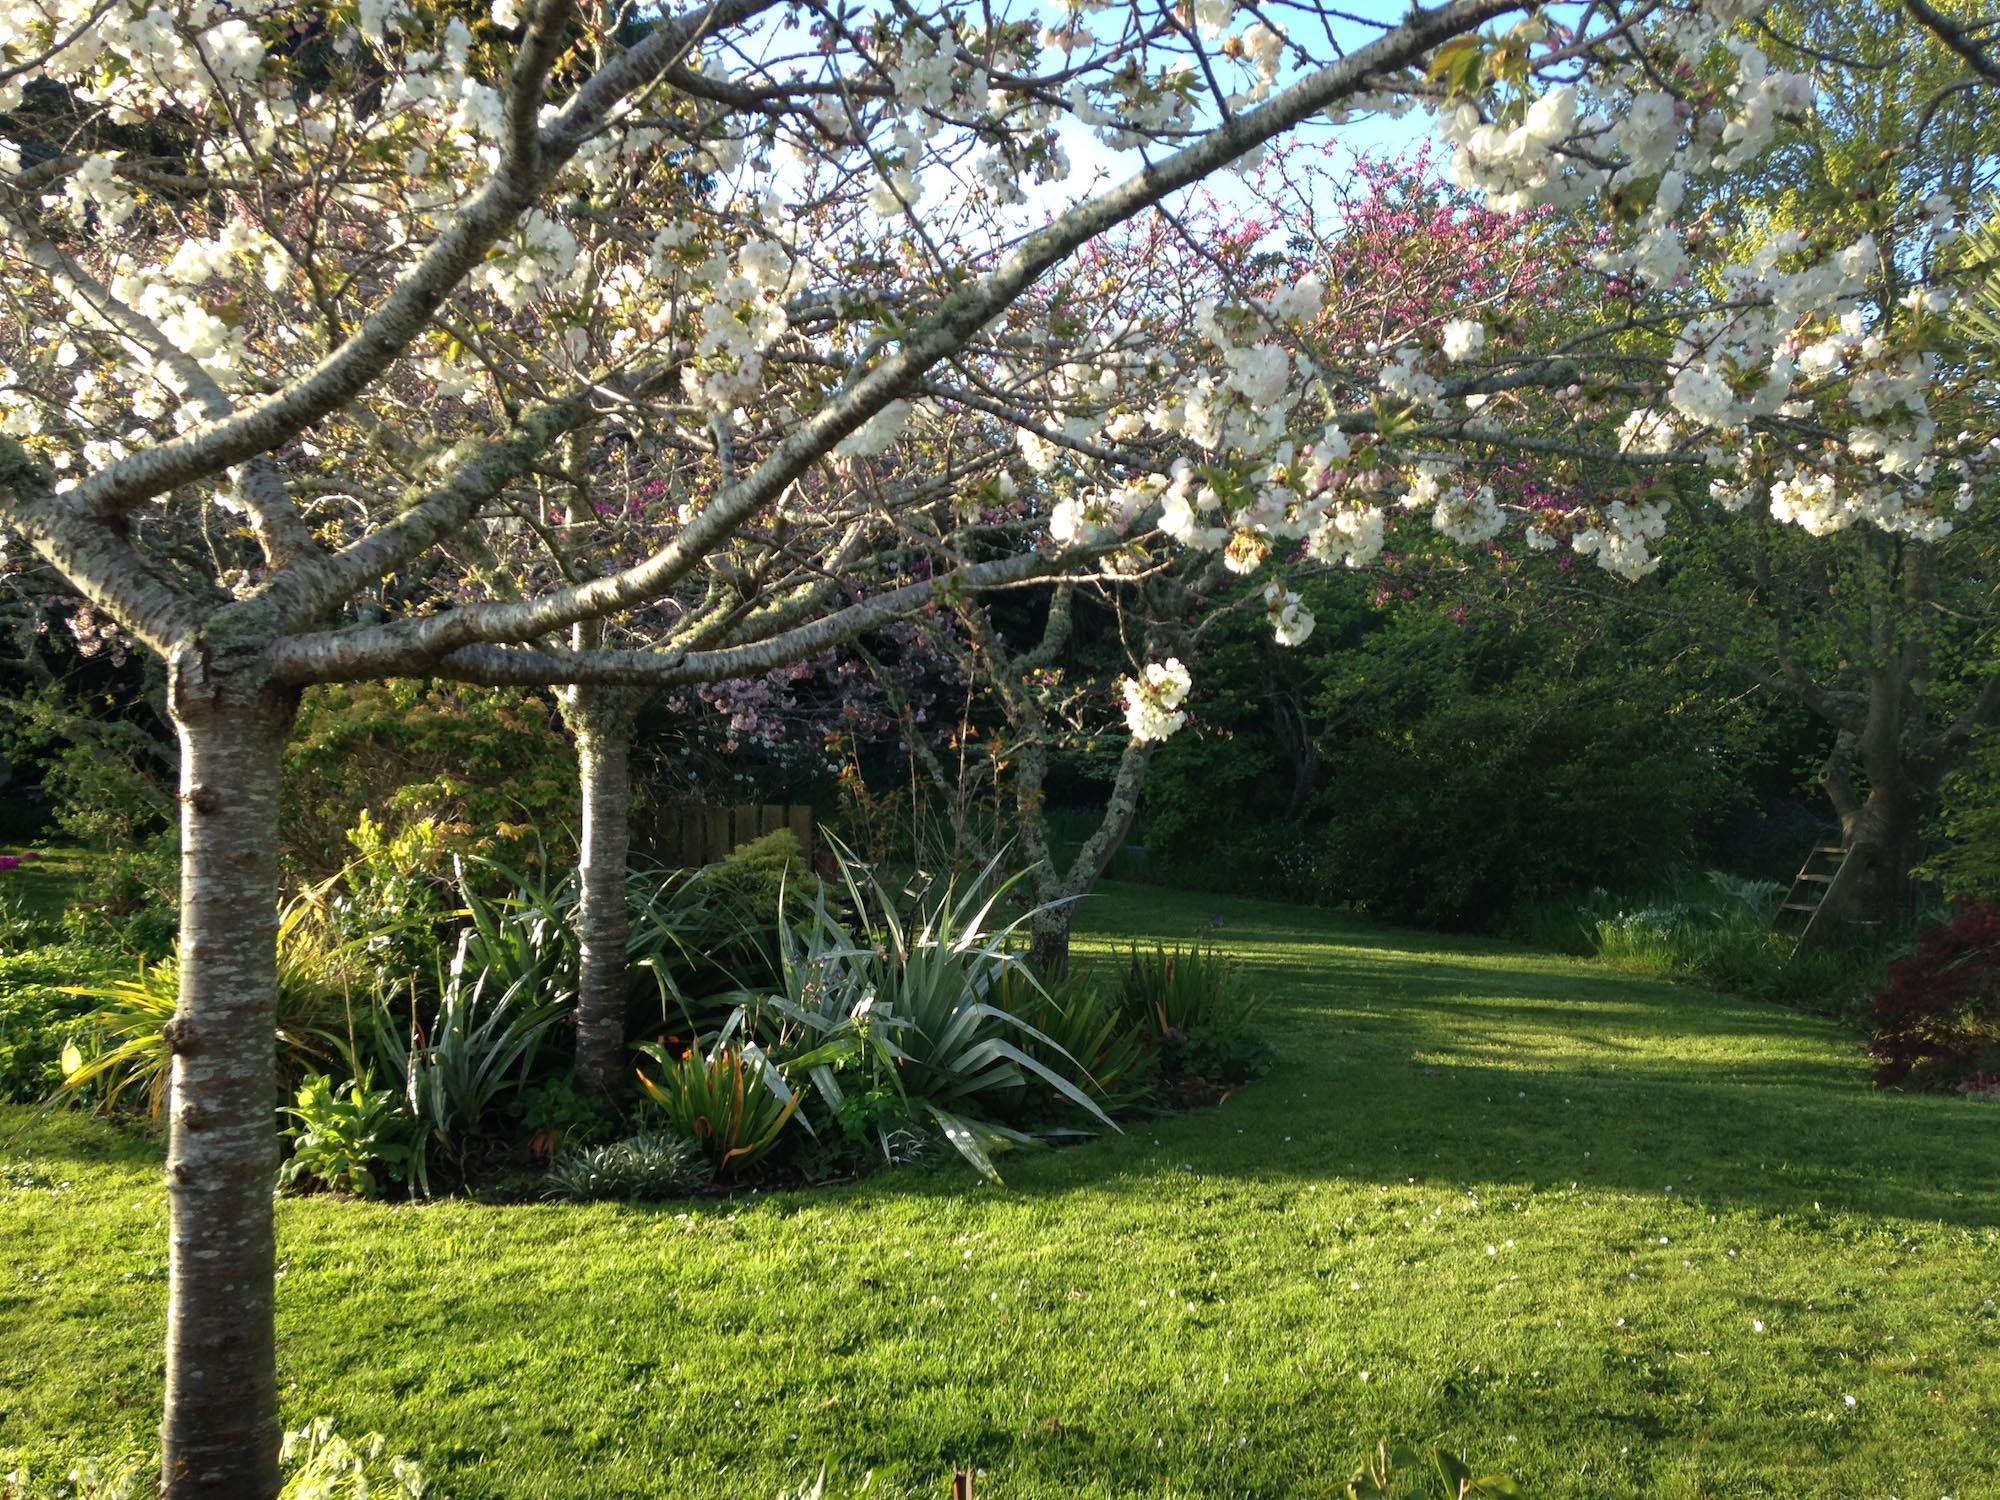 Bed-and-breakfast-whanganui- gardens